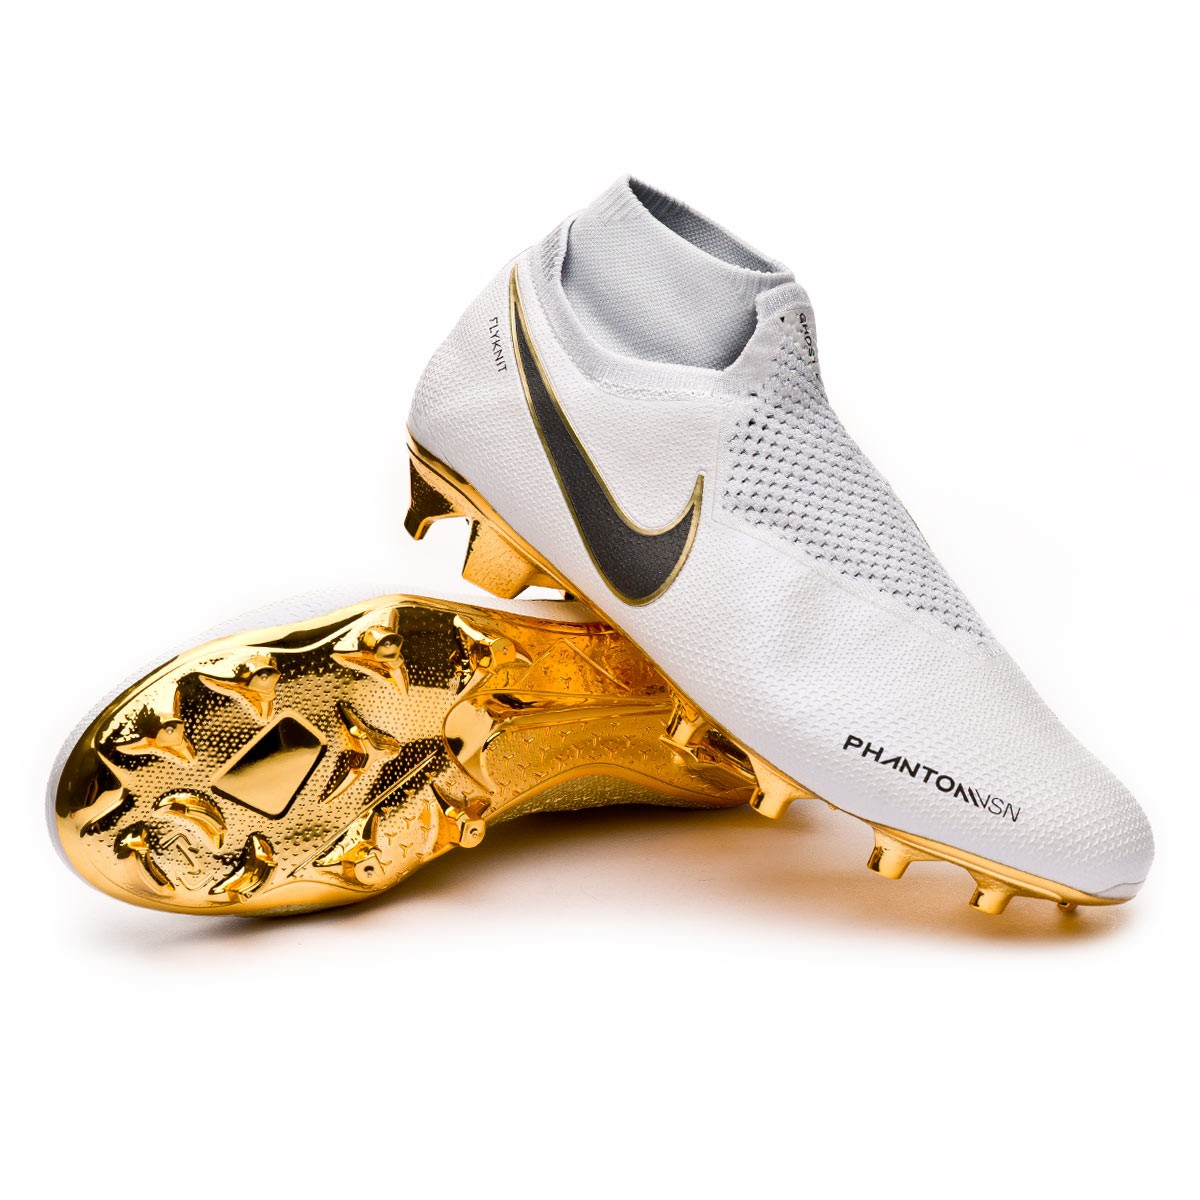 b971af3e3fe Boot Nike Phantom Vision Elite DF FG Limited Edition White-Metallic ...